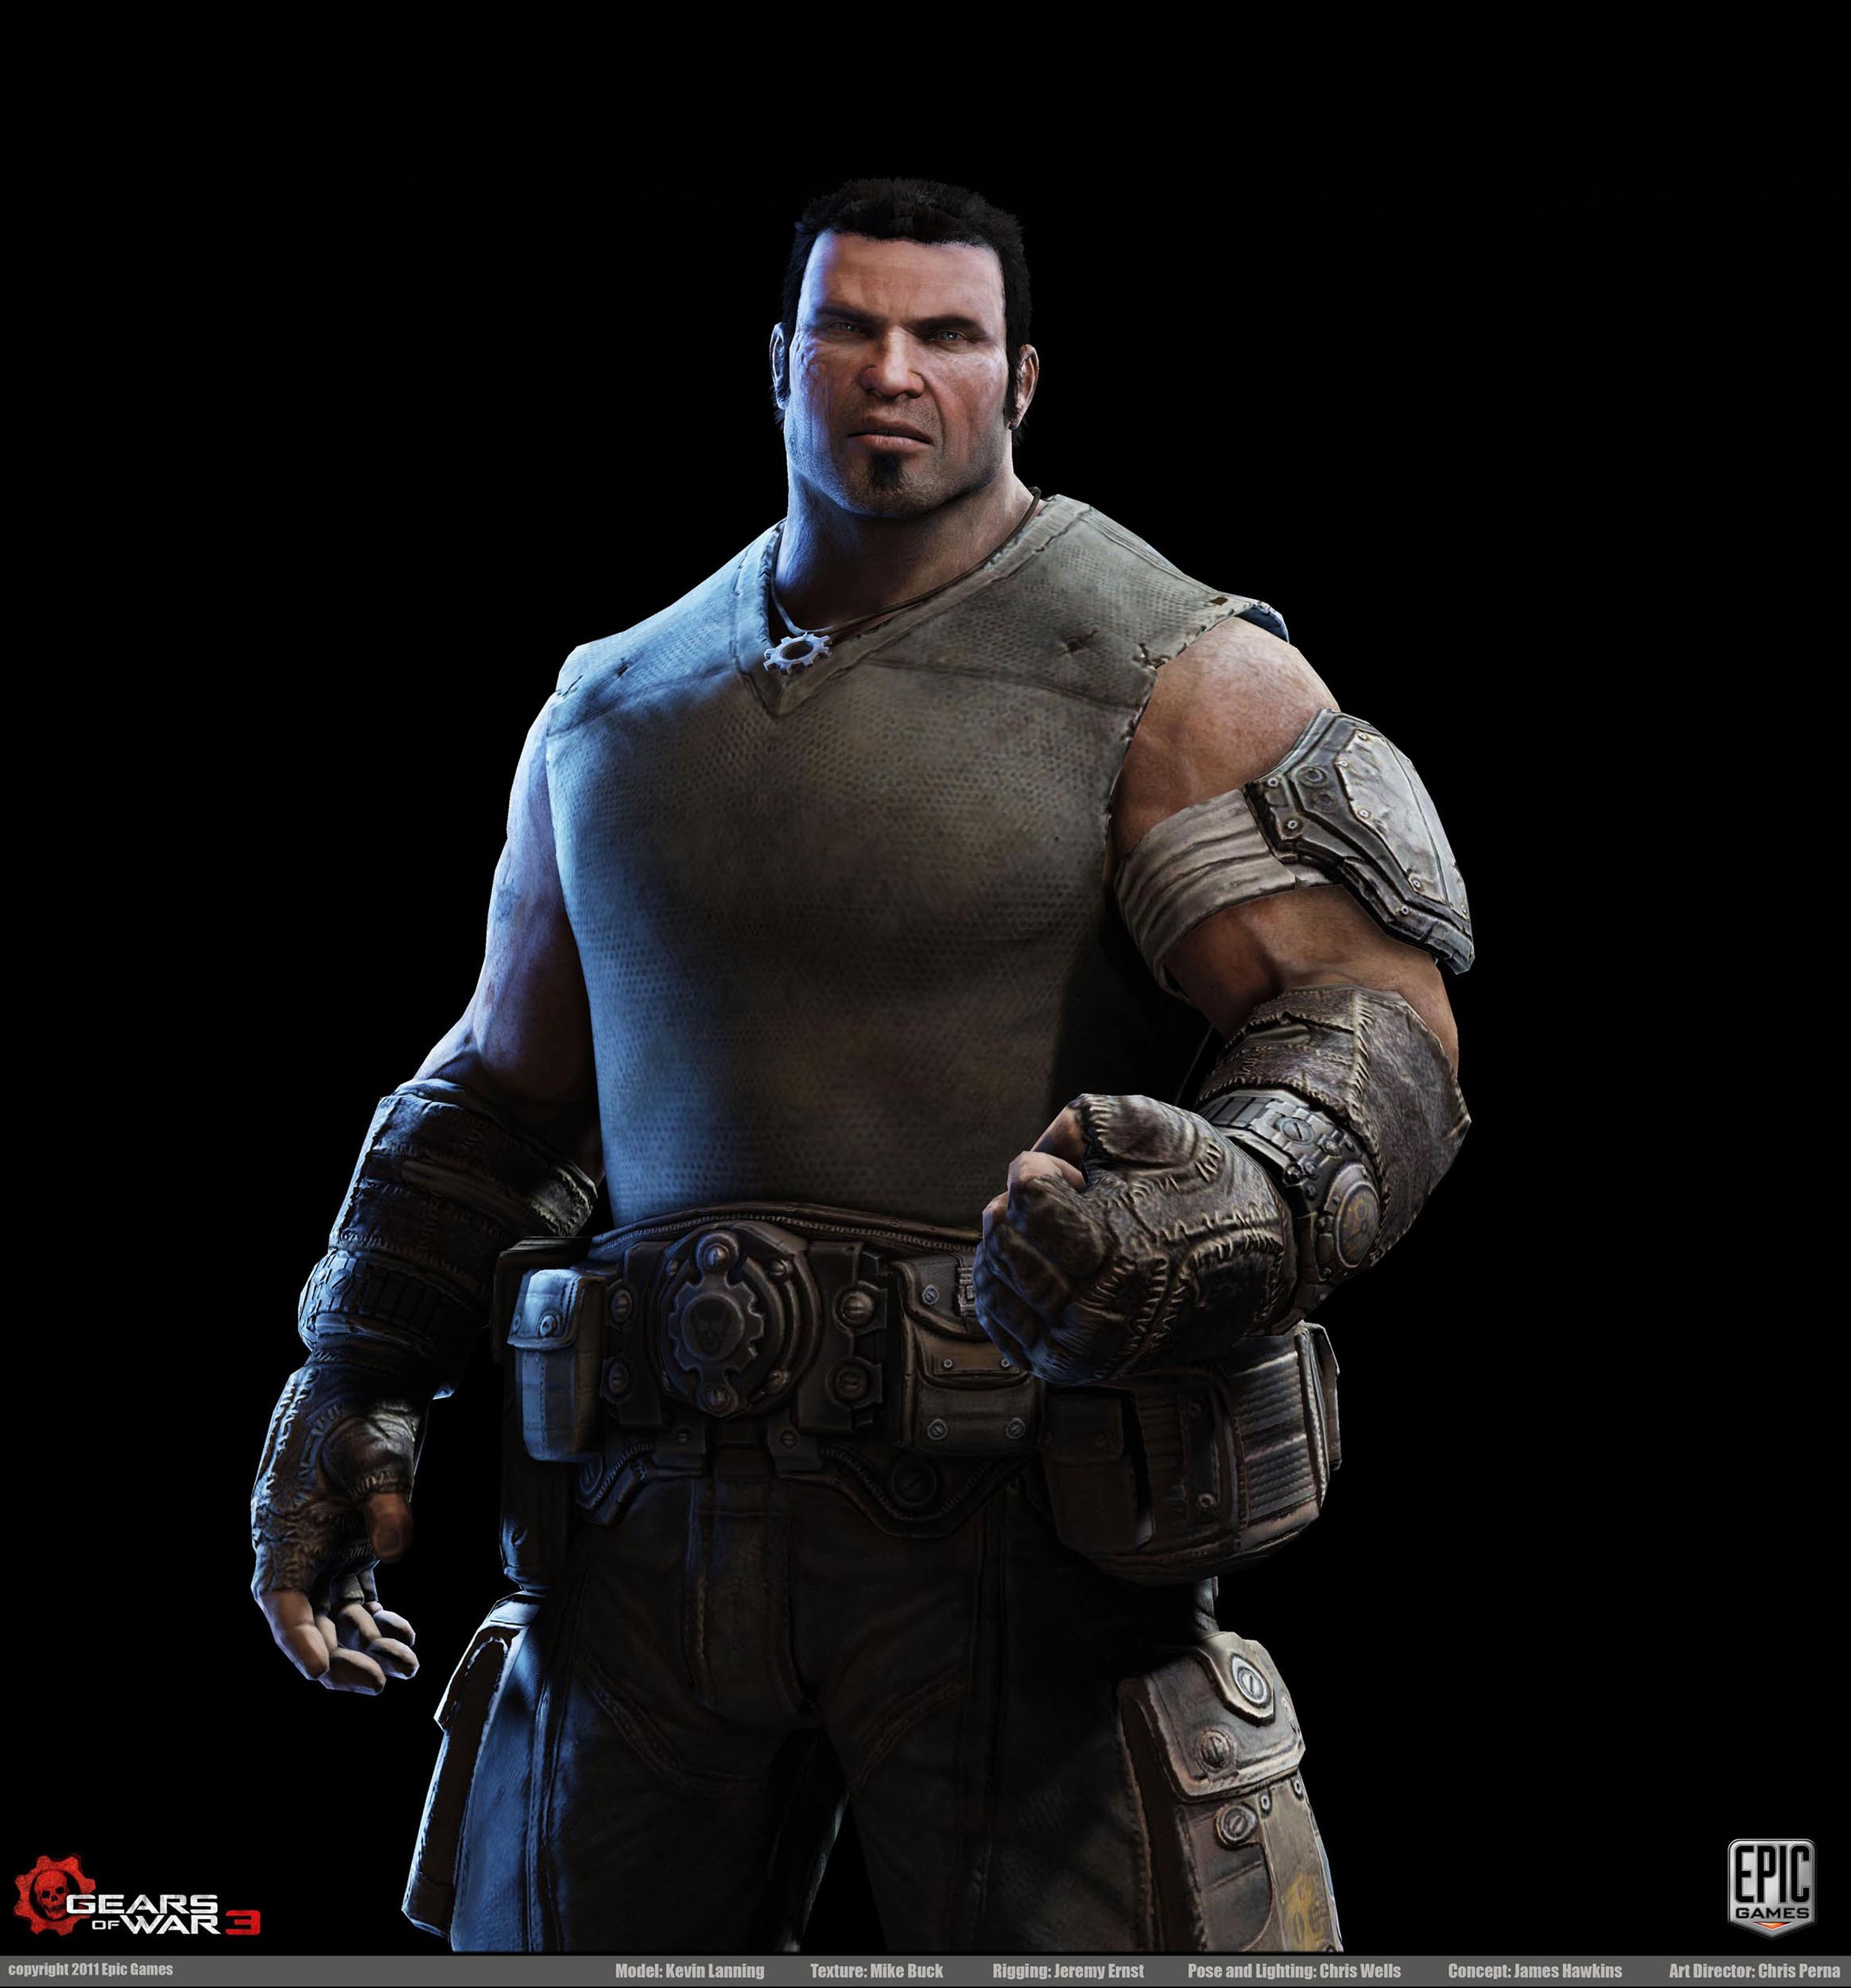 Gears Of War 3 Character Art Dump New Images Posted On Pg 17